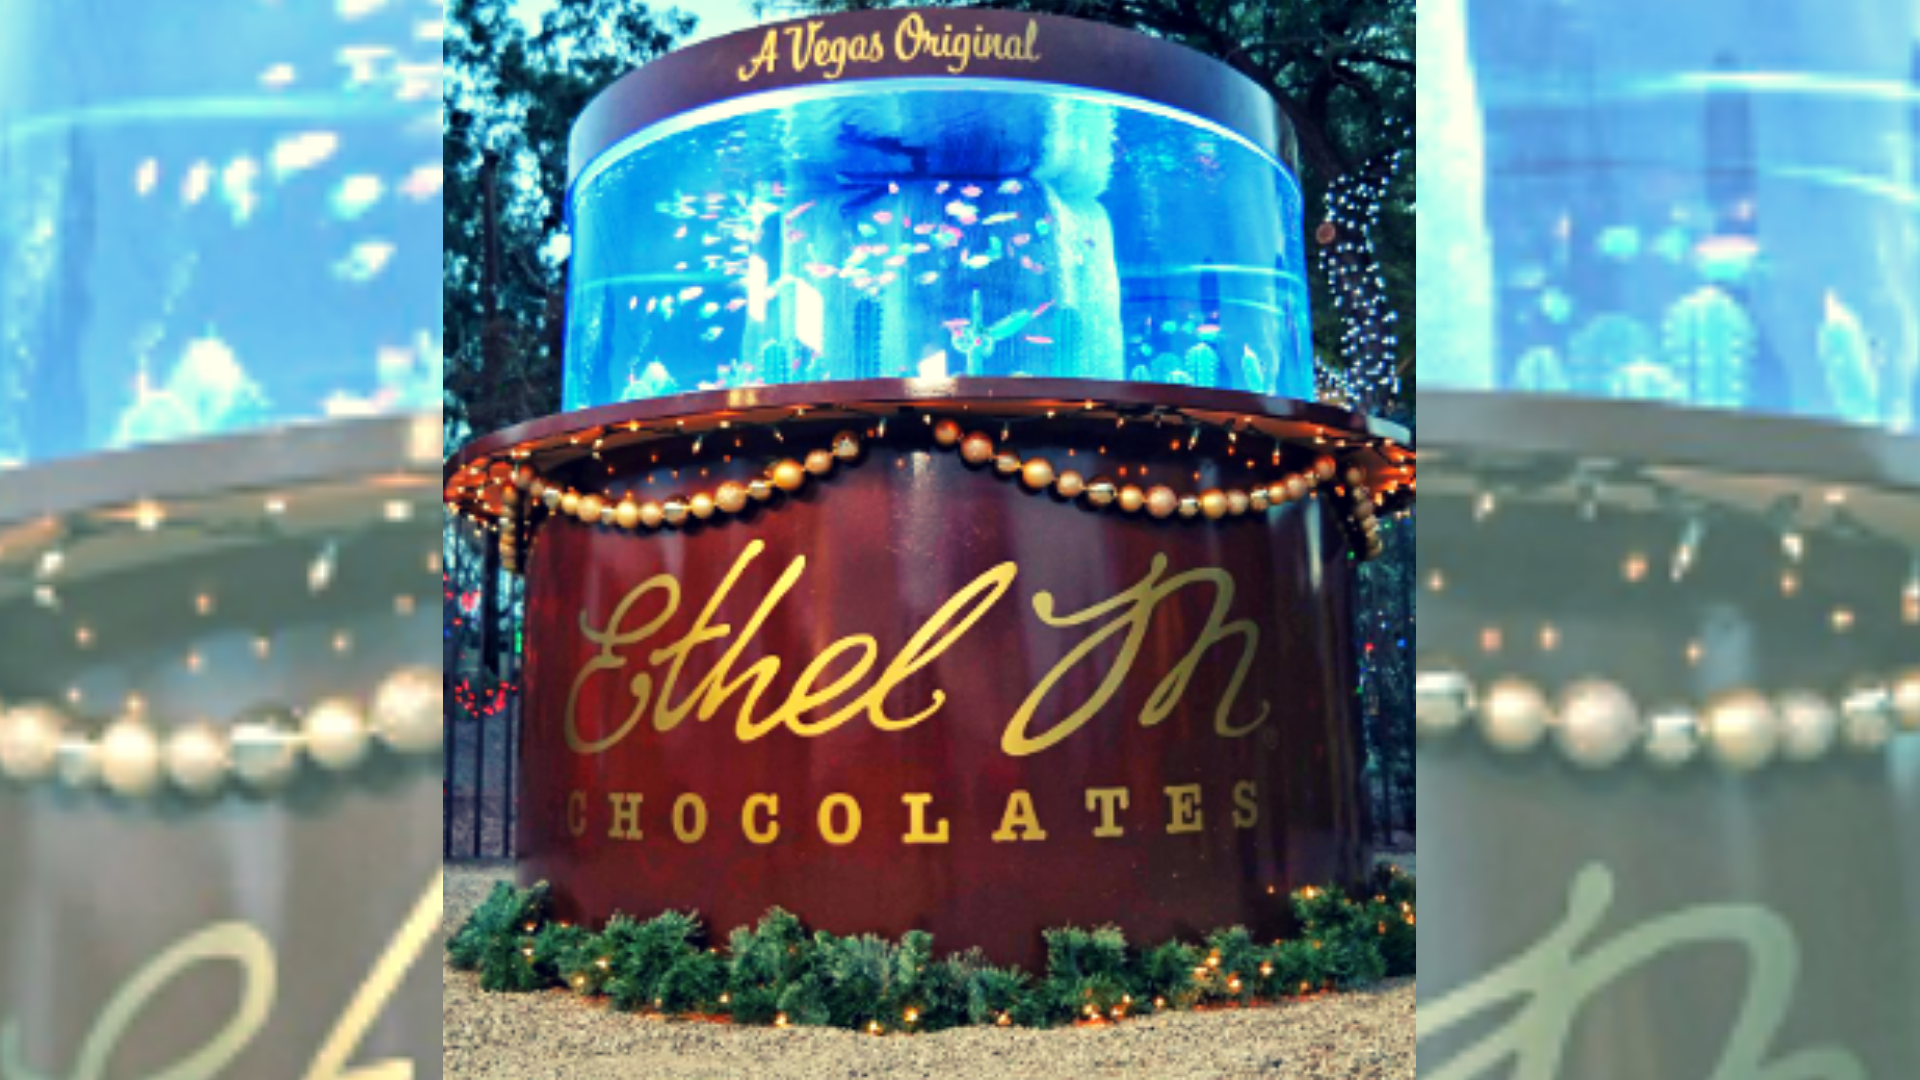 Tanked Unveils Holiday Themed Aquarium At Ethel M Chocolate Factory In Henderson